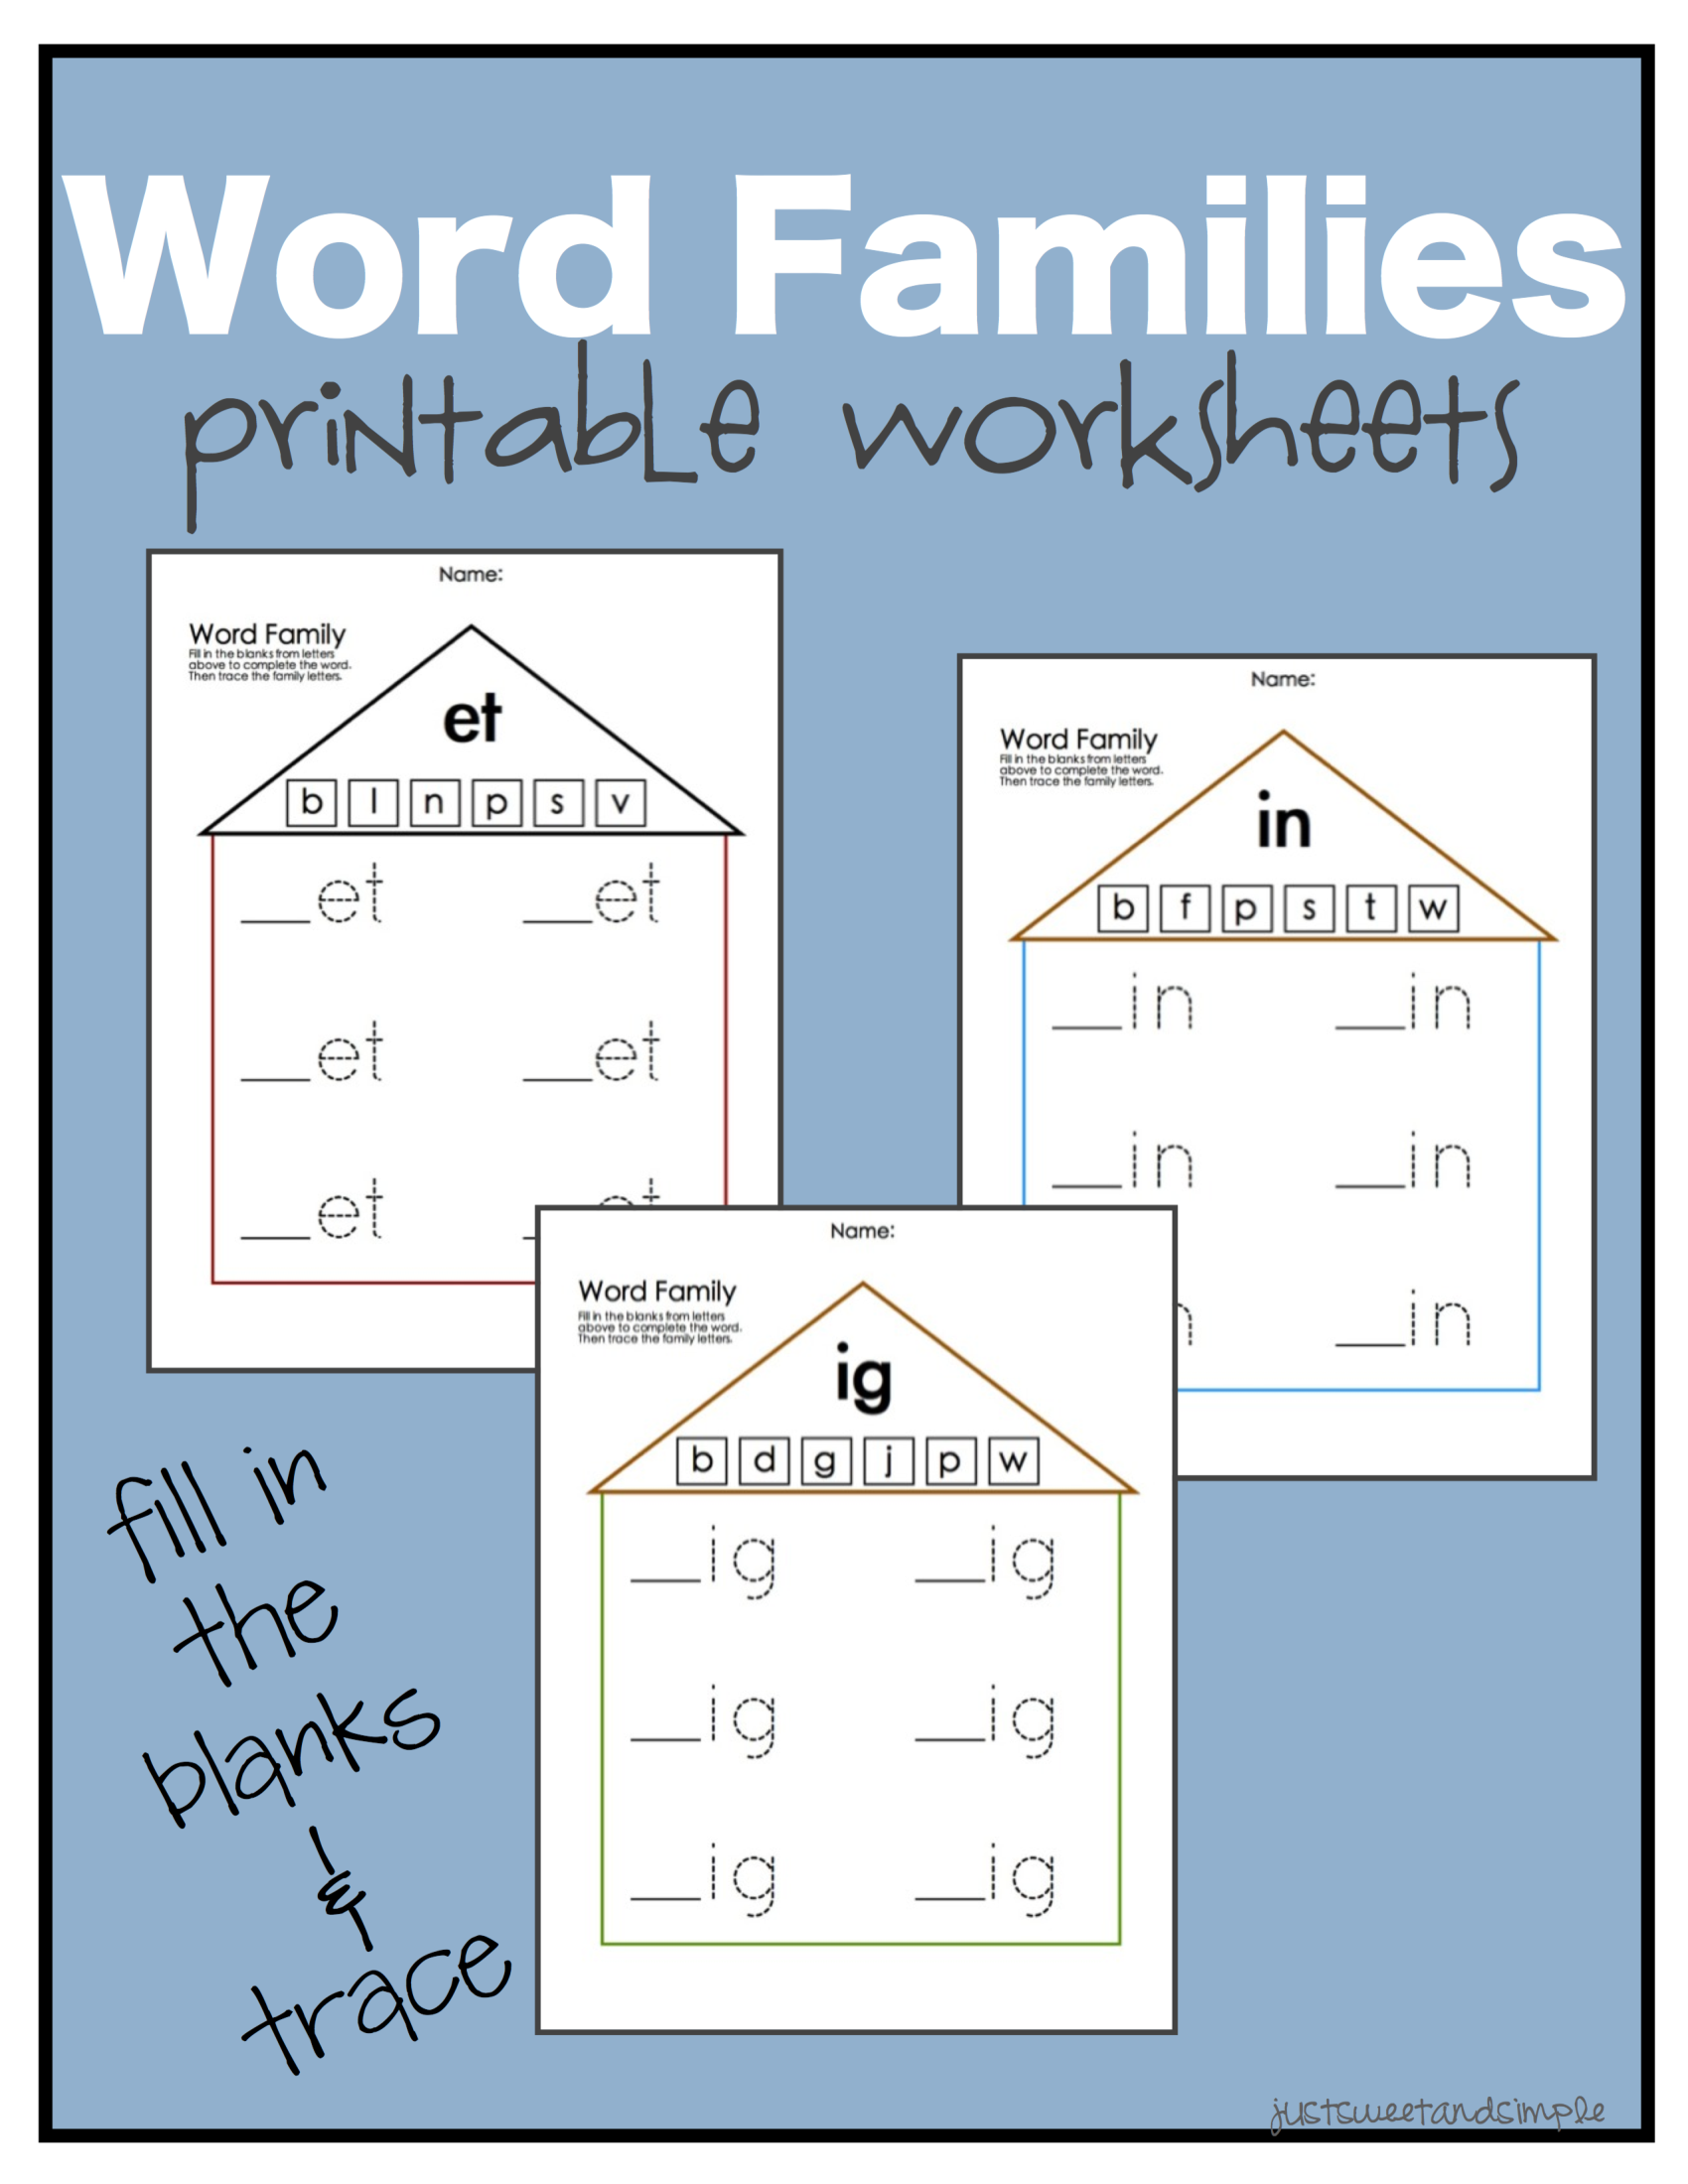 Word Families Pdf Word Family Worksheets Kindergarten Word Families Kindergarten Word Families Worksheets [ 2200 x 1700 Pixel ]